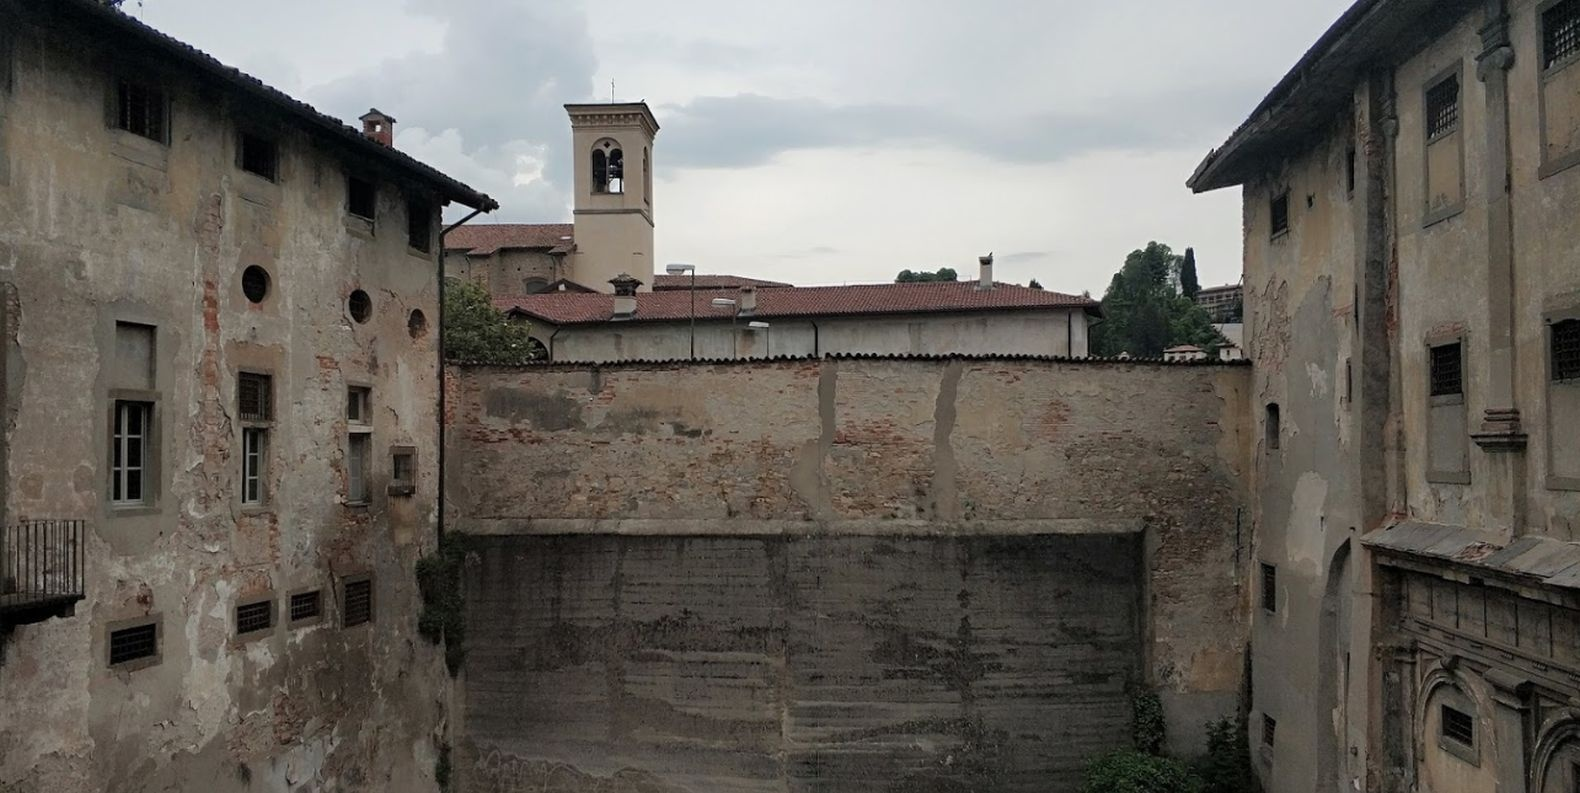 GUIDED TOURS OF THE FORMER S. AGATA PRISON